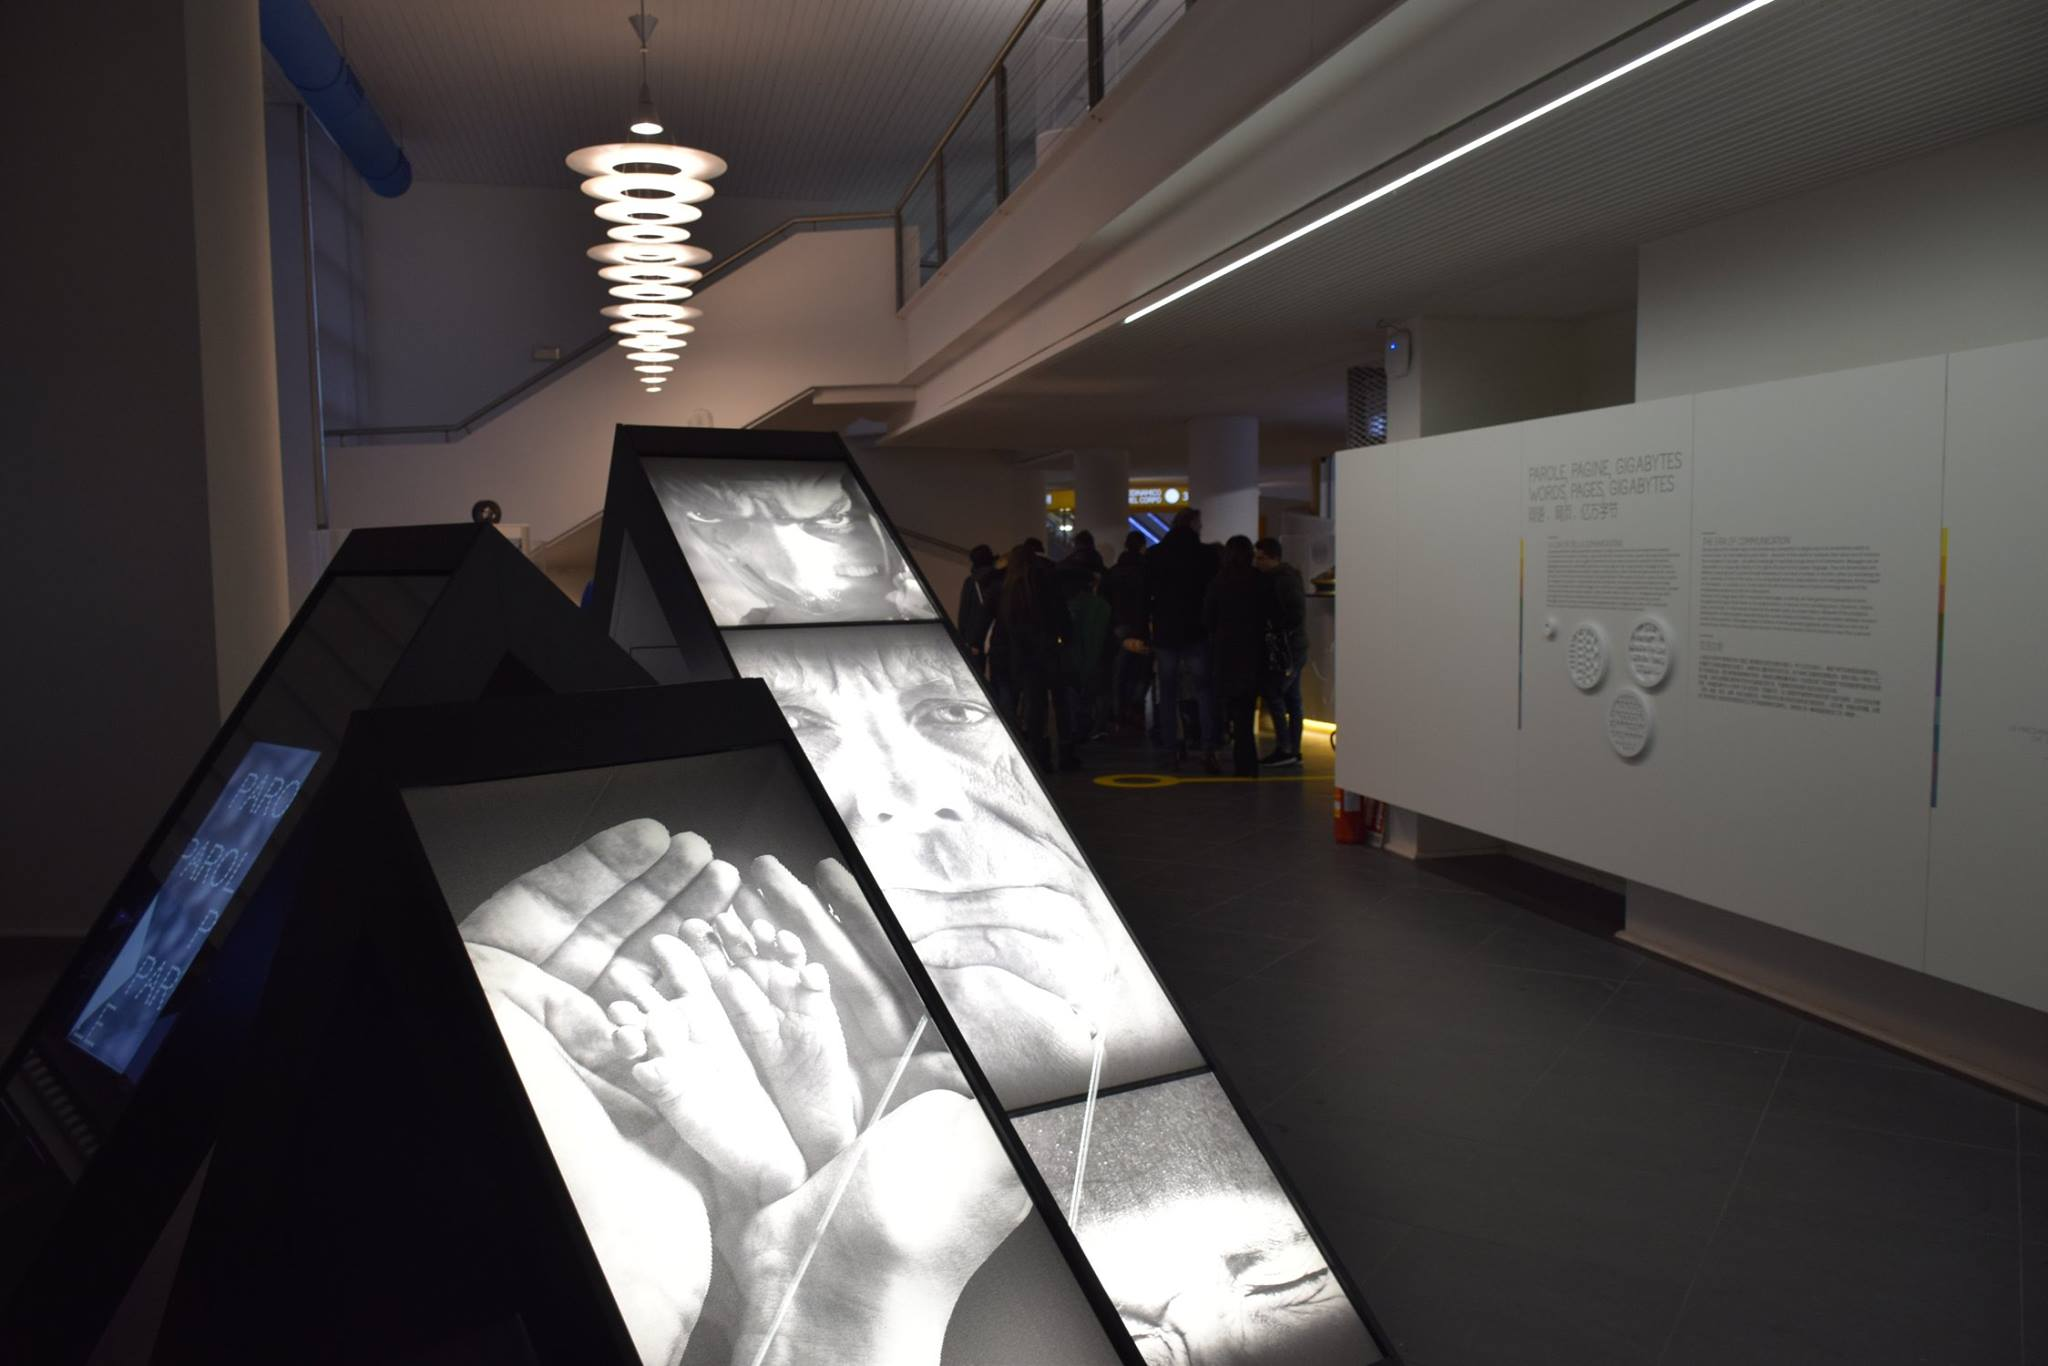 Involving the visitor, art through the exhibition design